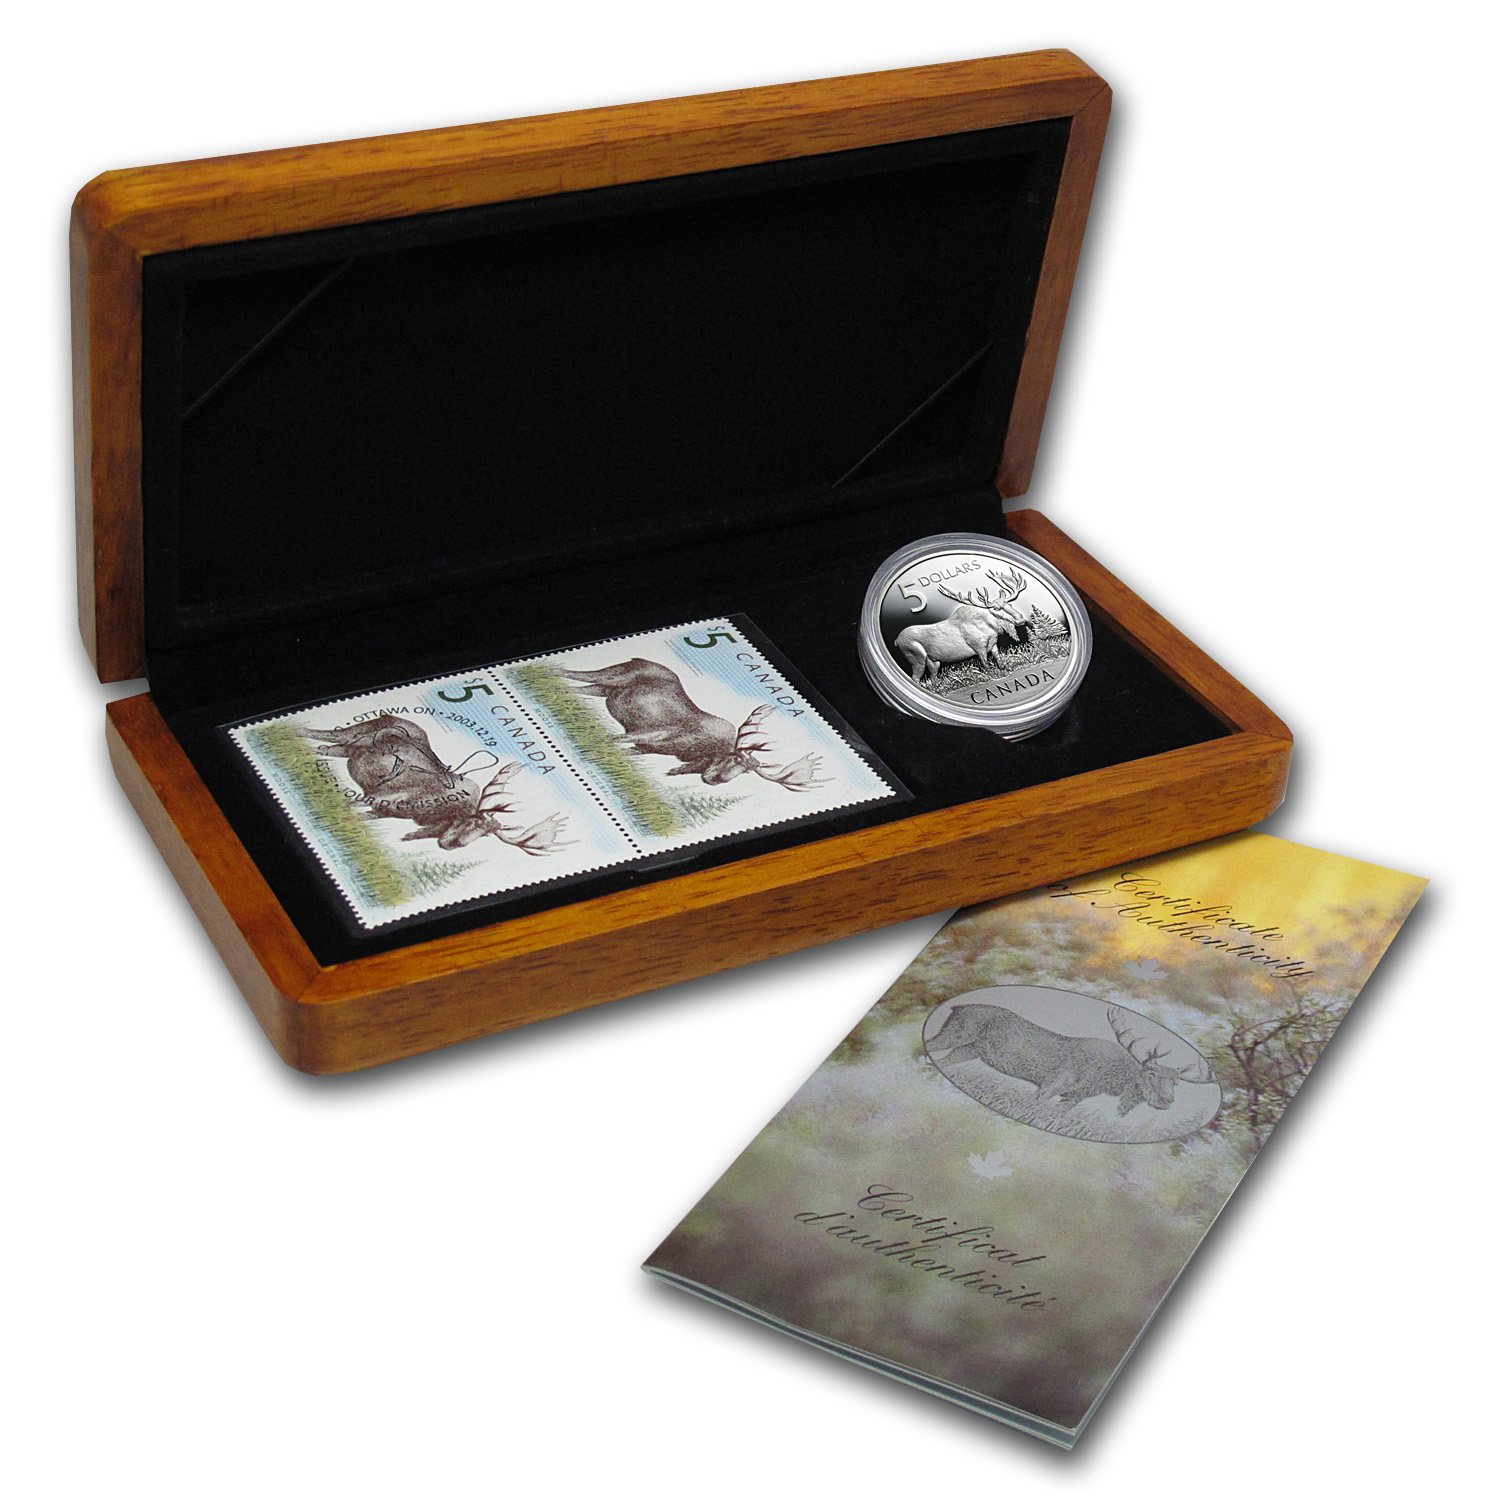 2004 1 oz Silver Canadian Moose Coin and Stamp Set (W/Box & COA)